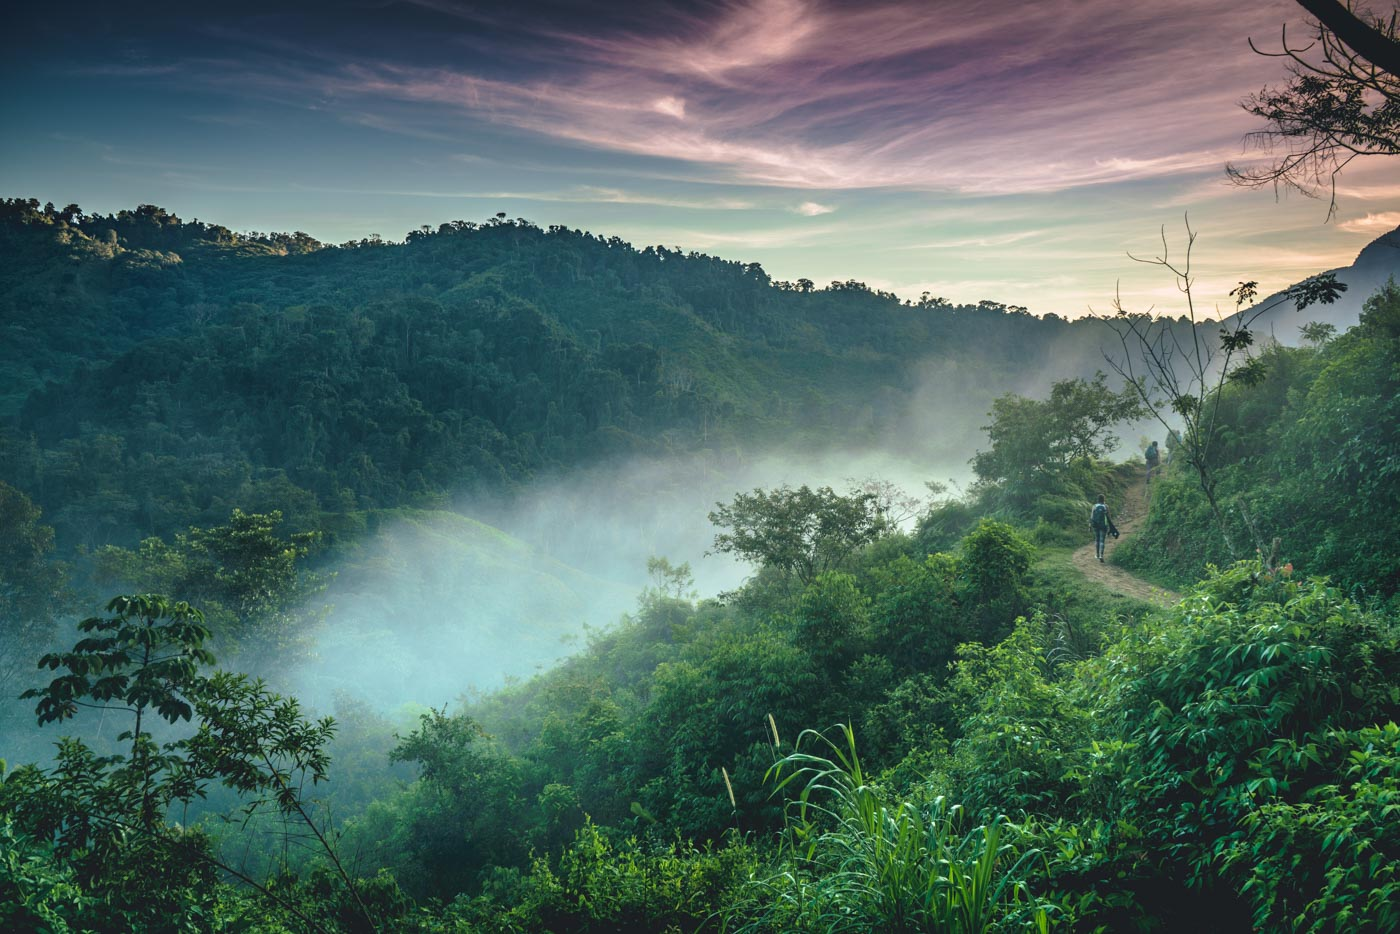 Early morning light over the jungle on Lost City trek